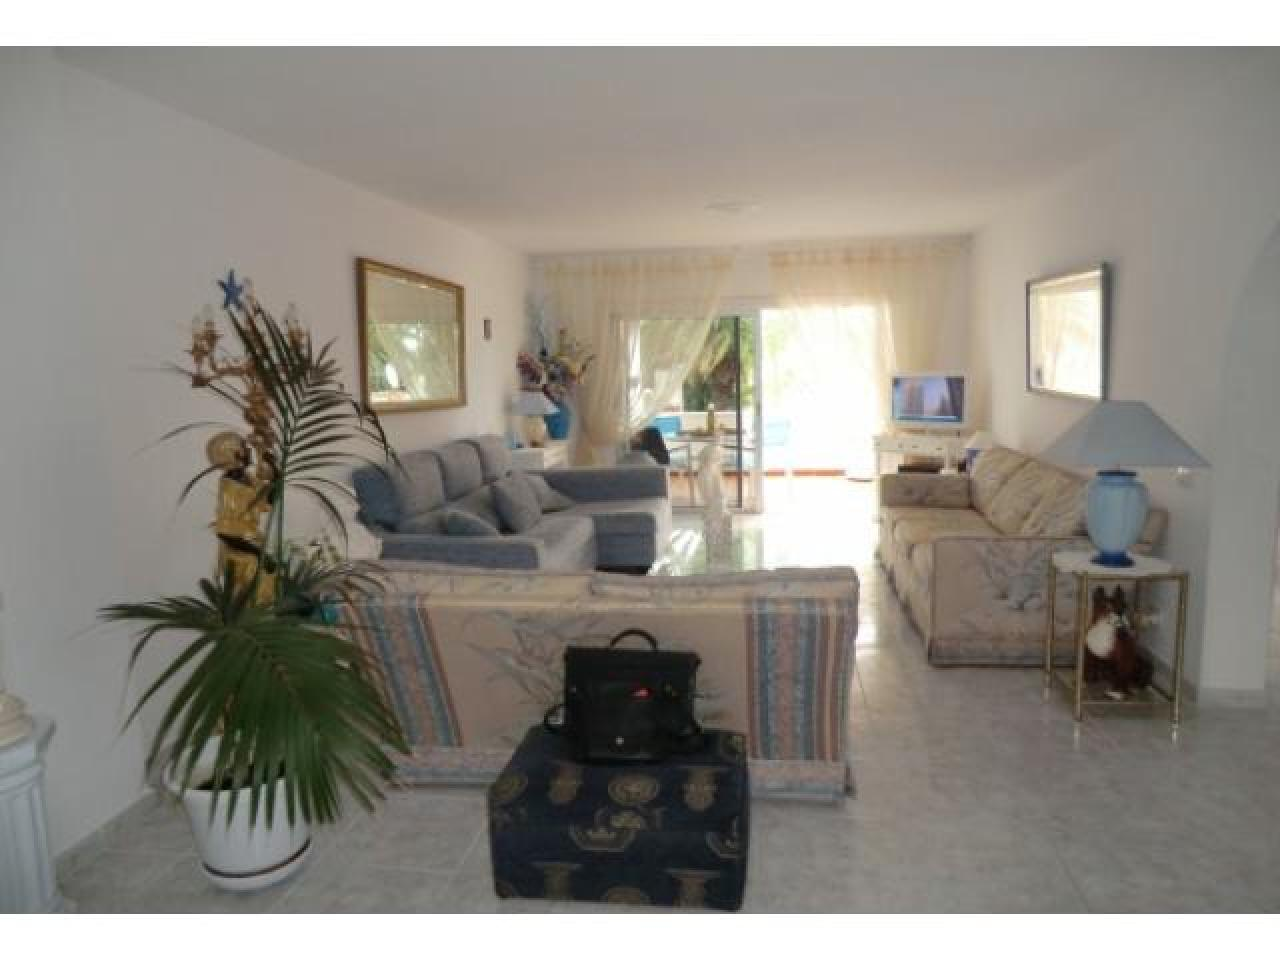 Real estate in Tenerife for sale » #217 - 4